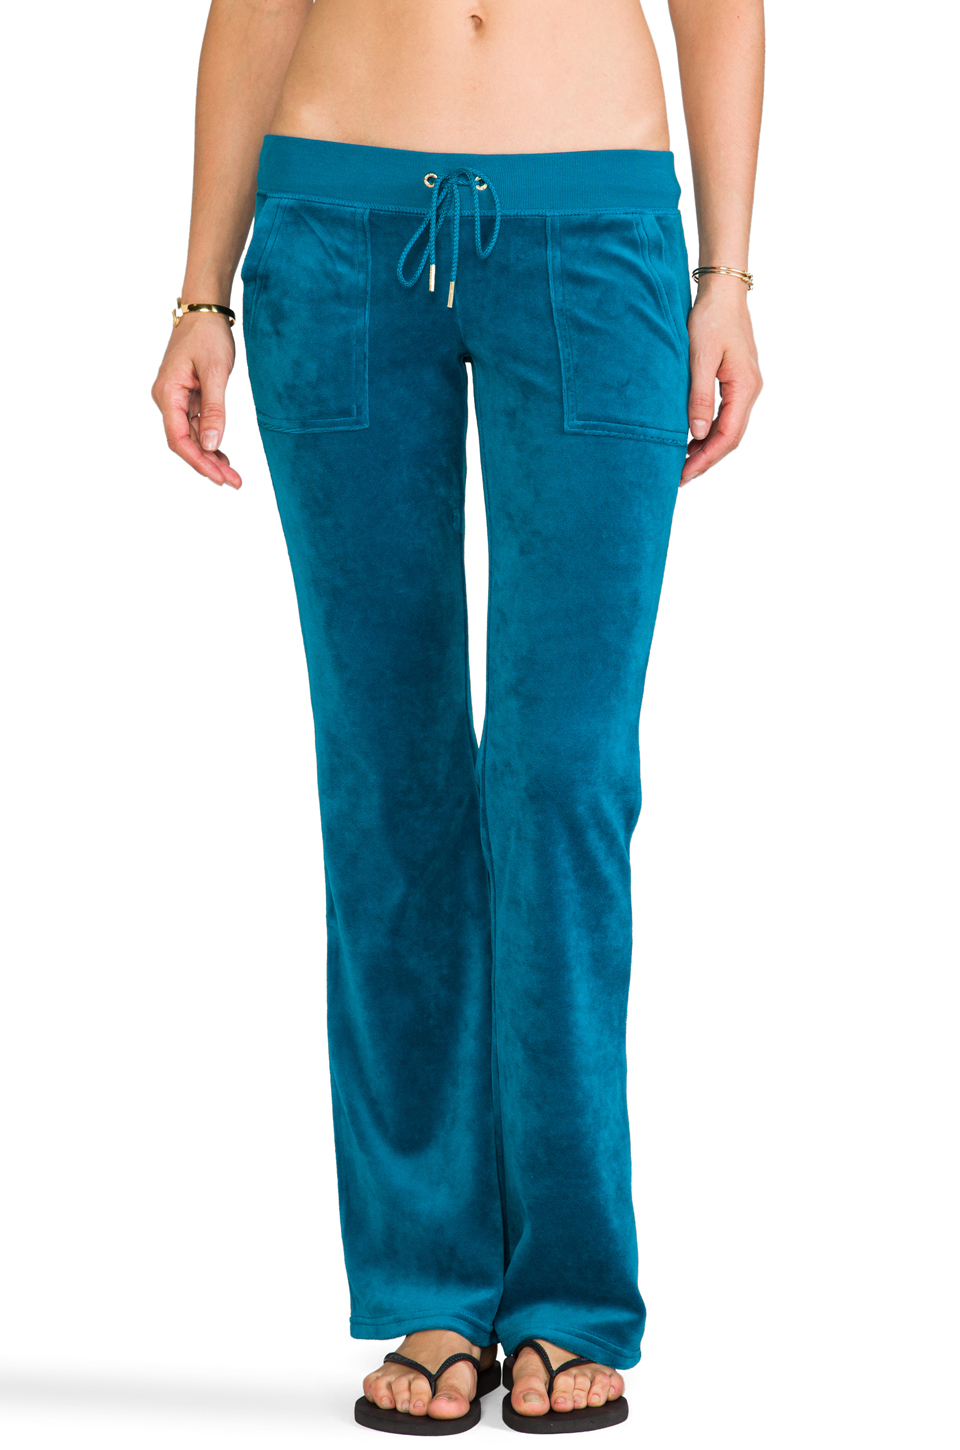 b57800a2 Juicy Couture J Bling Bootcut Pant in Teal in Blue - Lyst